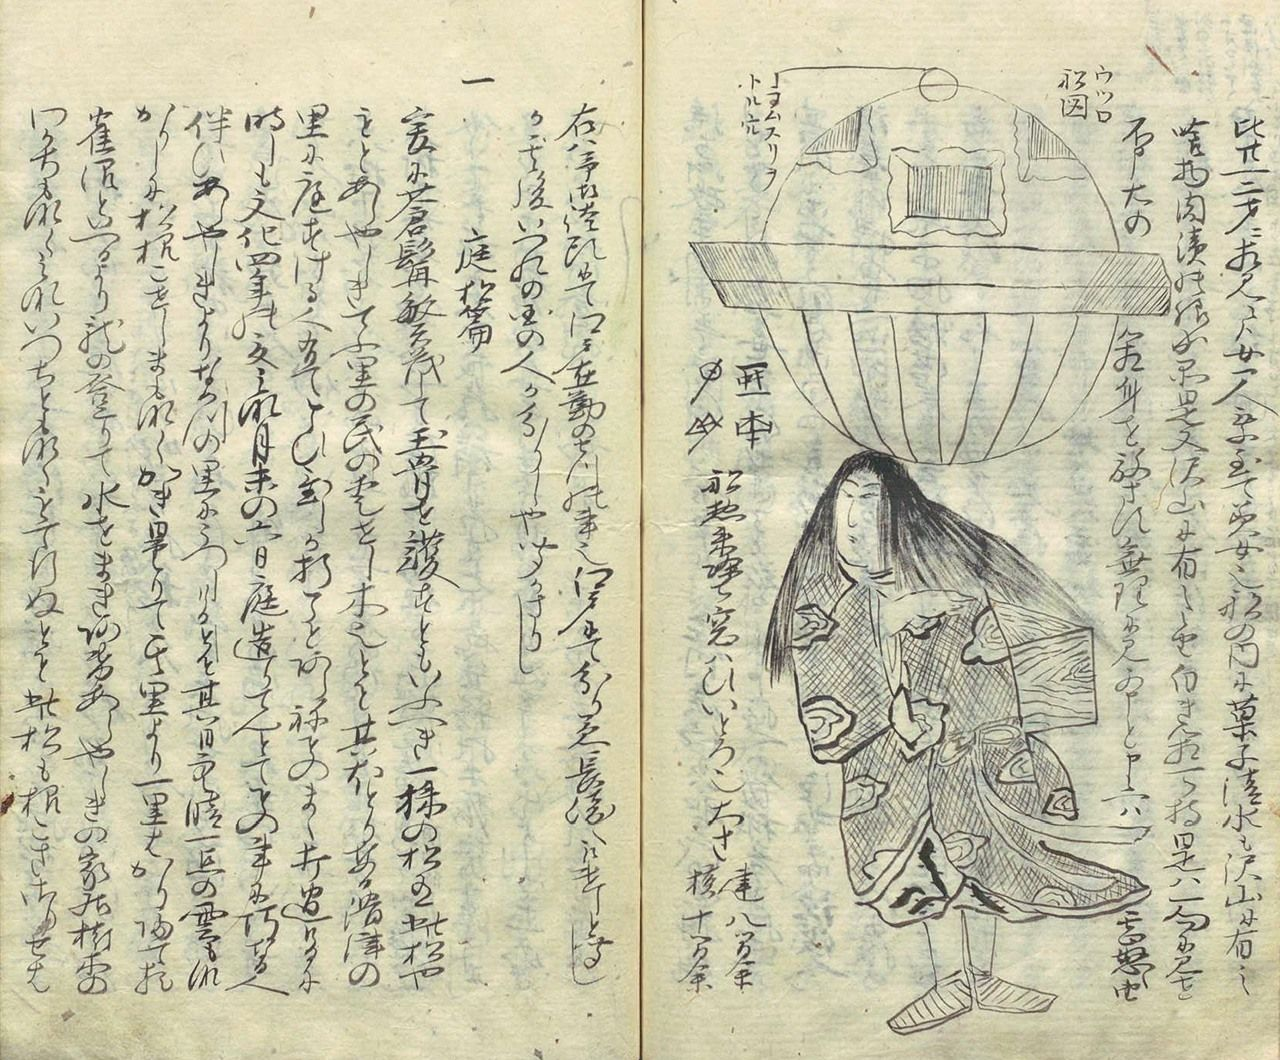 From Ōshuku zakki (Ōshuku Notes; around 1815) by Komai Norimura, a vassal of the powerful daimyō Matsudaira Sadanobu. (Courtesy National Diet Library)